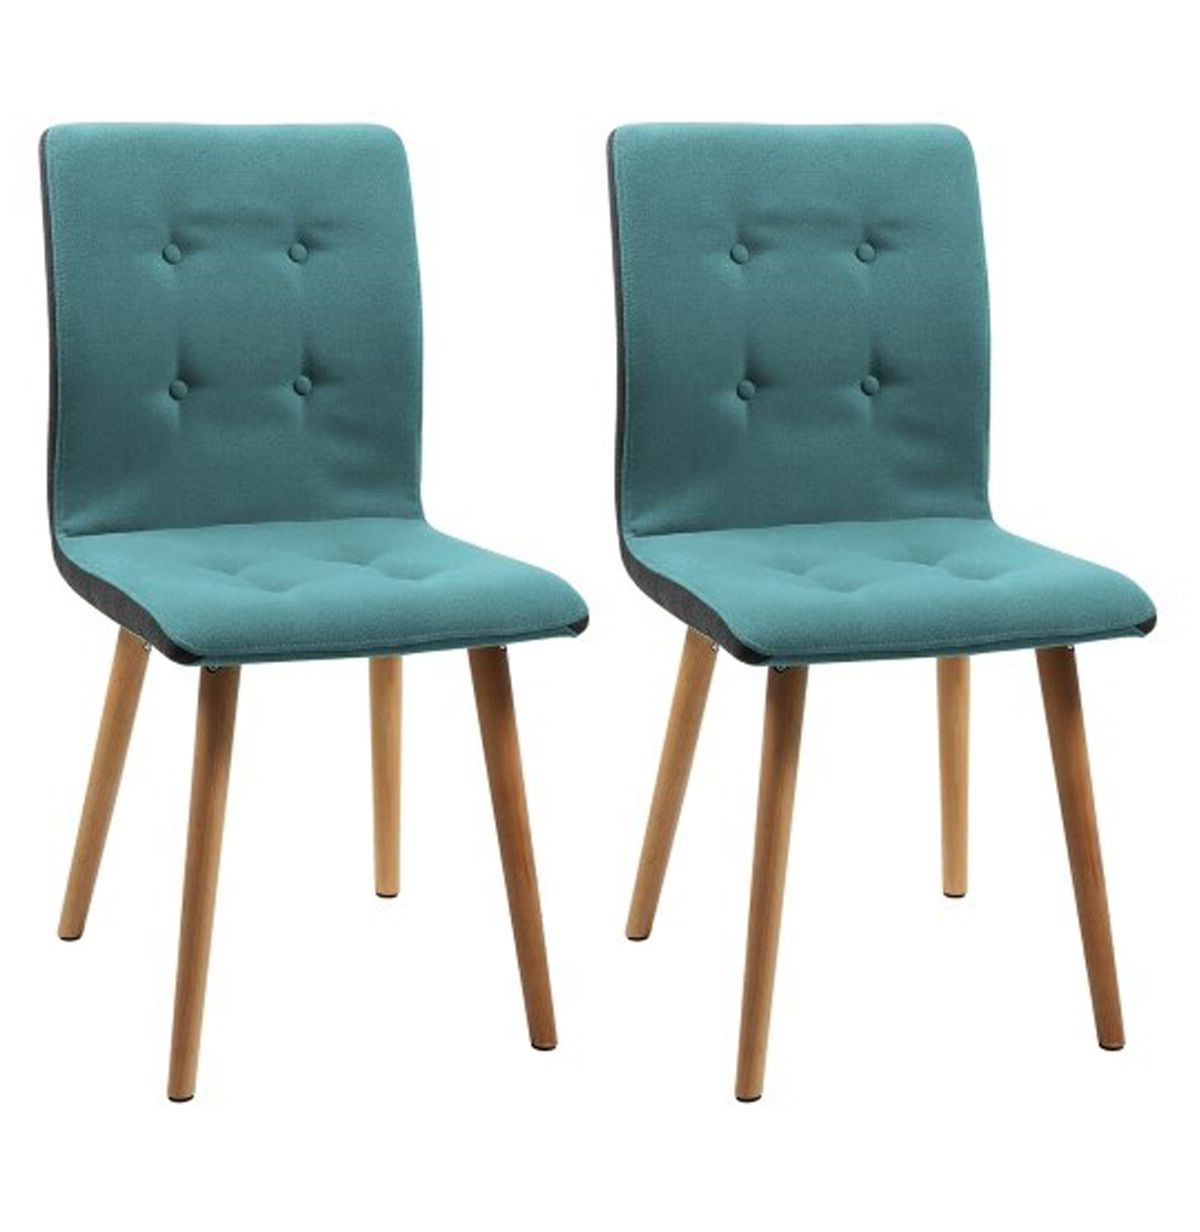 Frida 3 Piece Dining Table Sets Within Most Recent Frida Dining Chairs Teal Coloured Fabric (Pair) (Gallery 13 of 20)